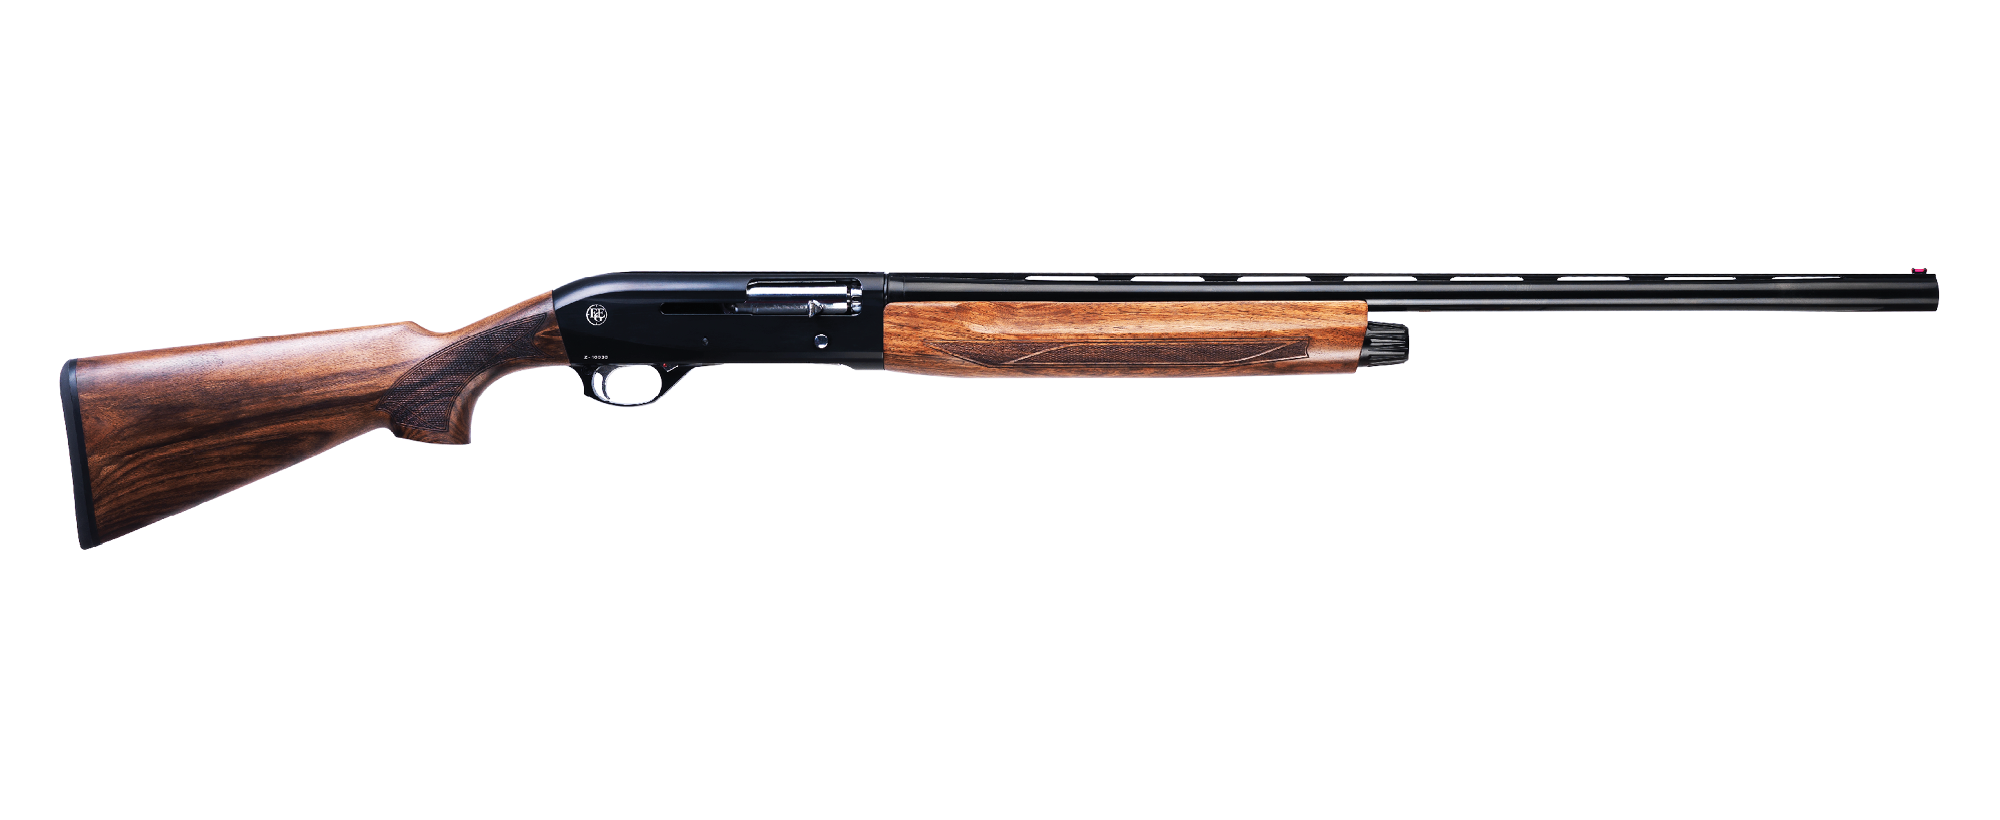 "EG 350 WALNUT 12 GAUGE / 3"" - 76 mm"